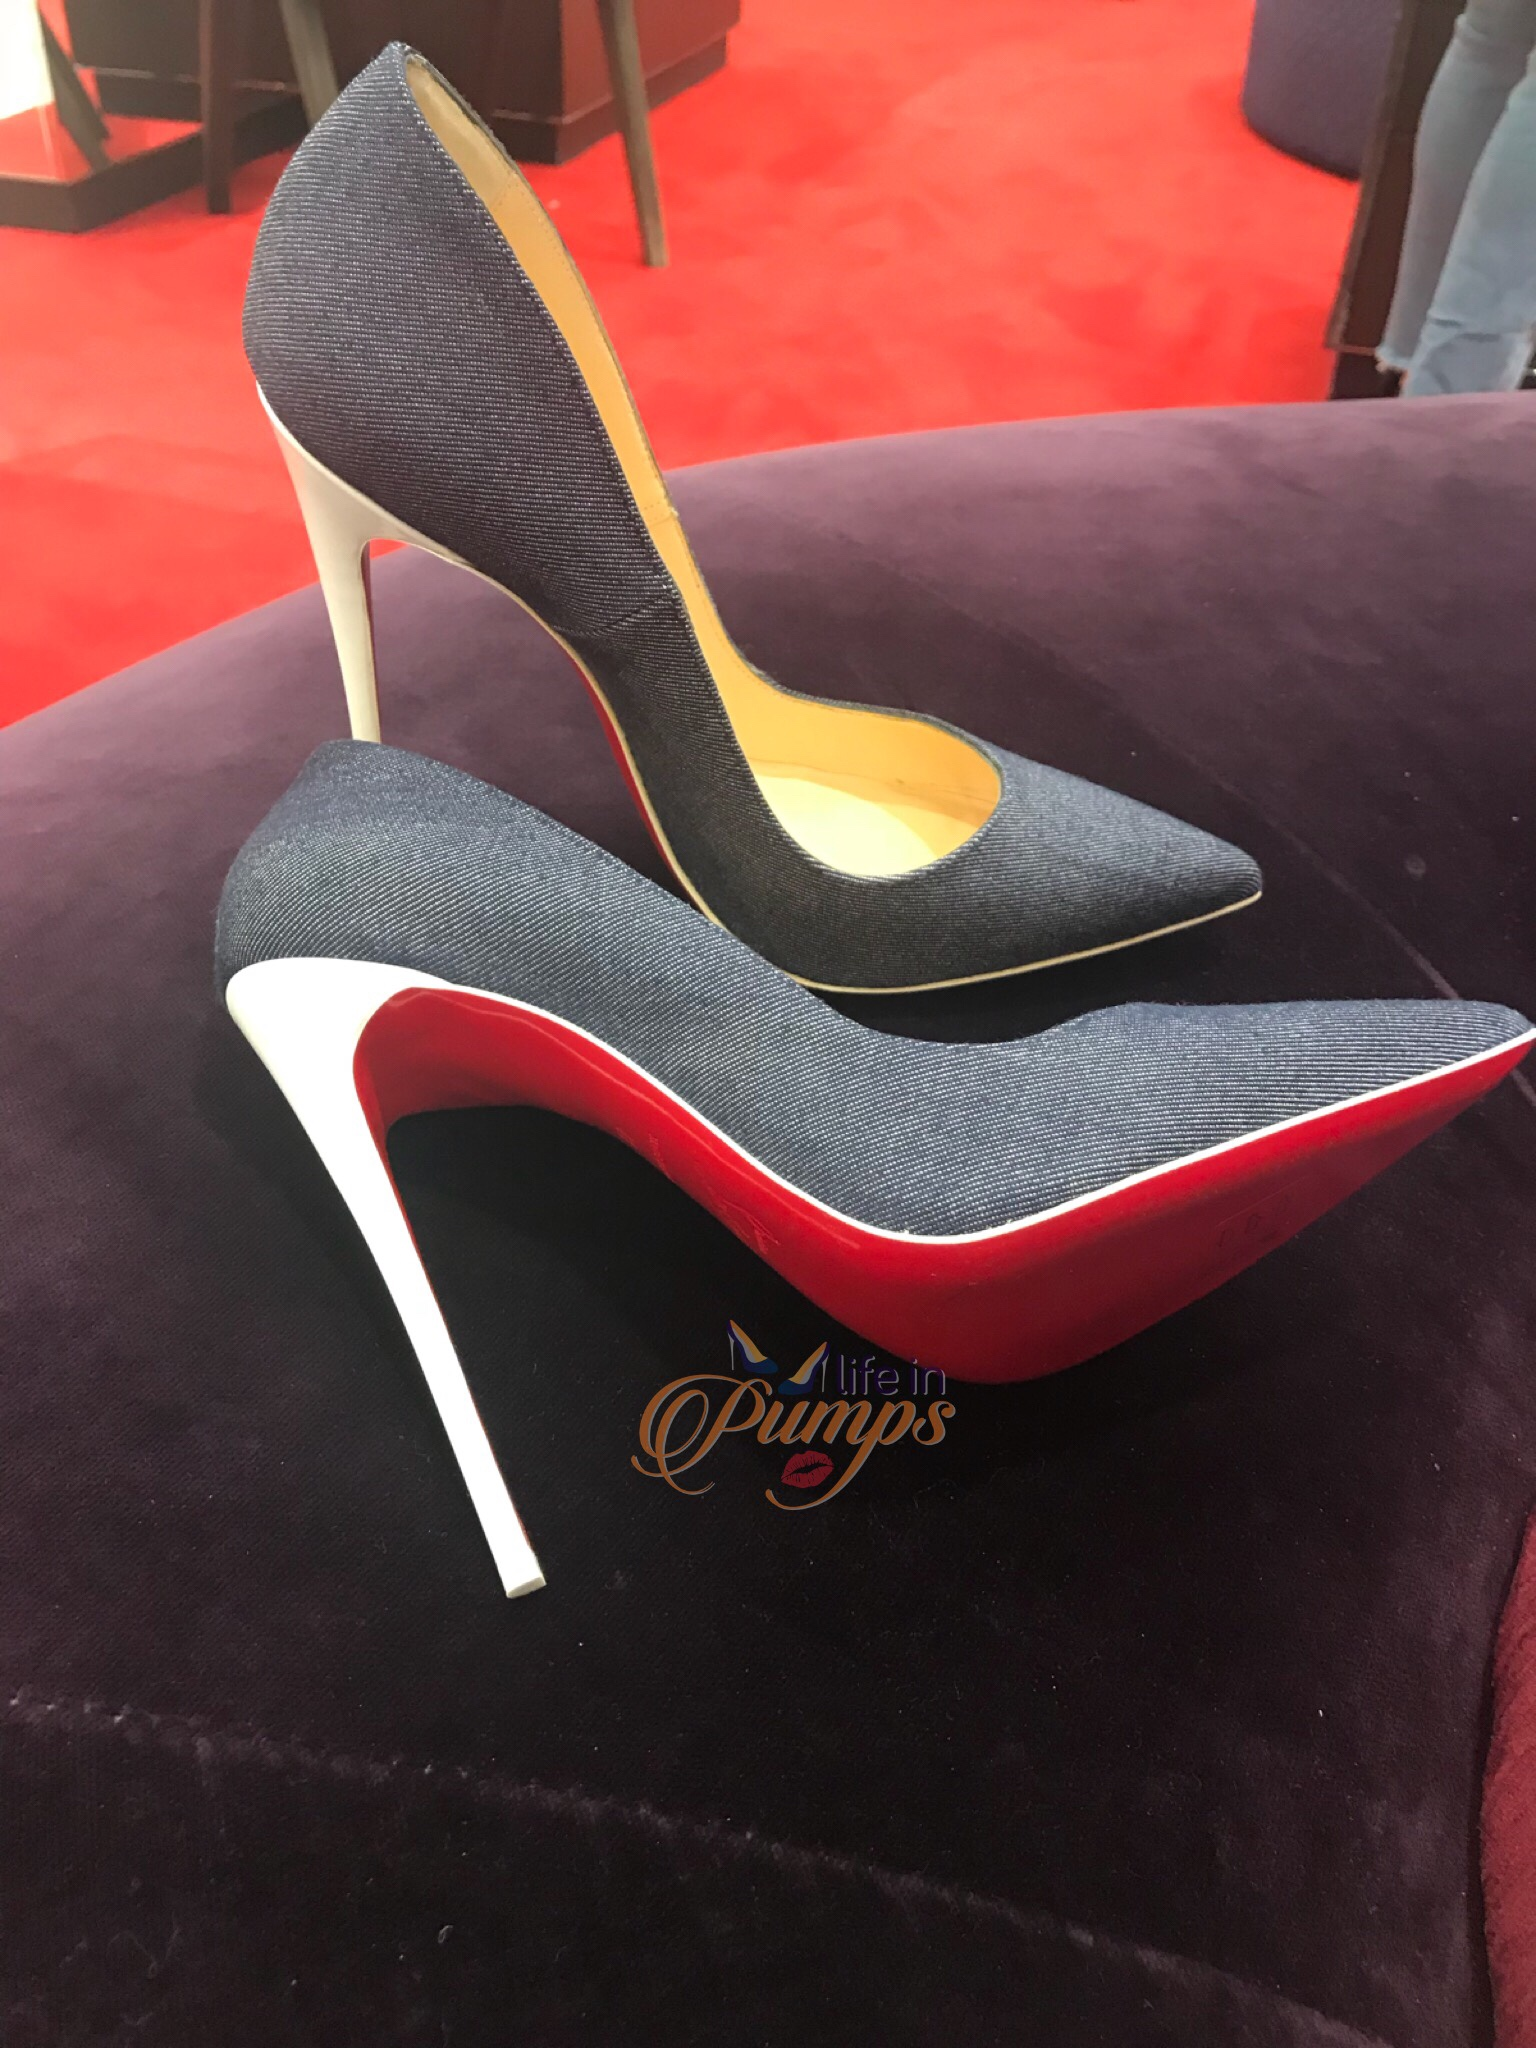 christian louboutin shoes, #choosechicago, #lifeionpumps,